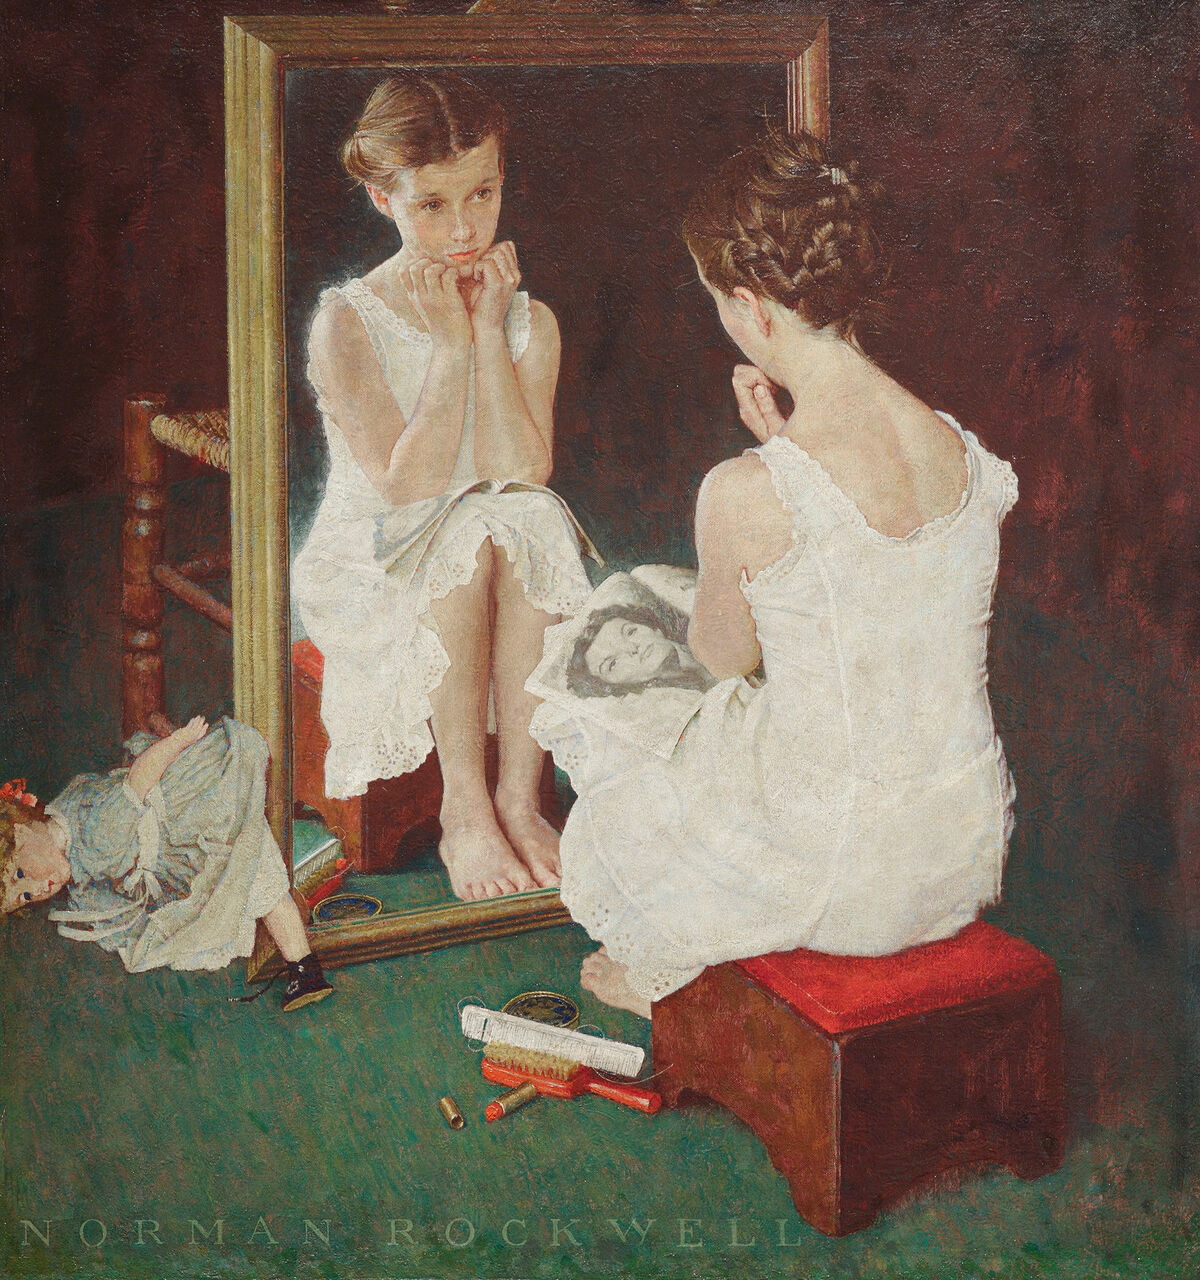 Norman Rockwell, Girl at Mirror, 1954. Cover illustration for The Saturday Evening Post, March 6, 1951. © SEPS: Licensed by Curtis Licensing, Indianapolis, IN. Courtesy of the Norman Rockwell Museum.